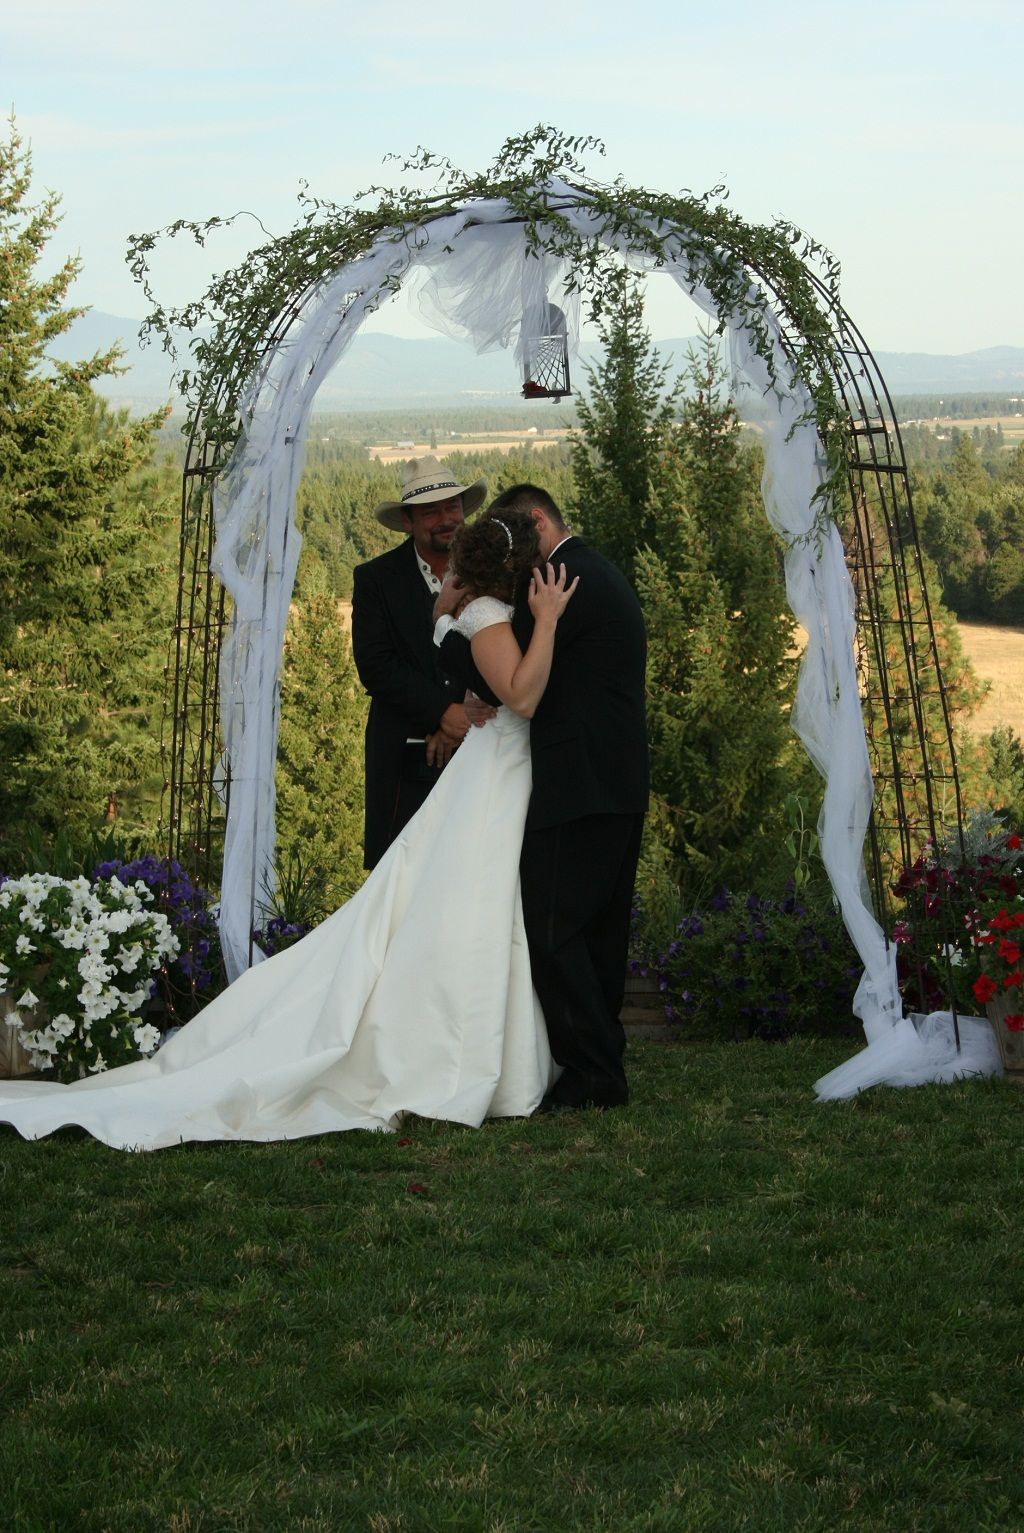 Ideas for wedding decorations outside  Great tips on Backyard Wedding decorations  backyard  Pinterest